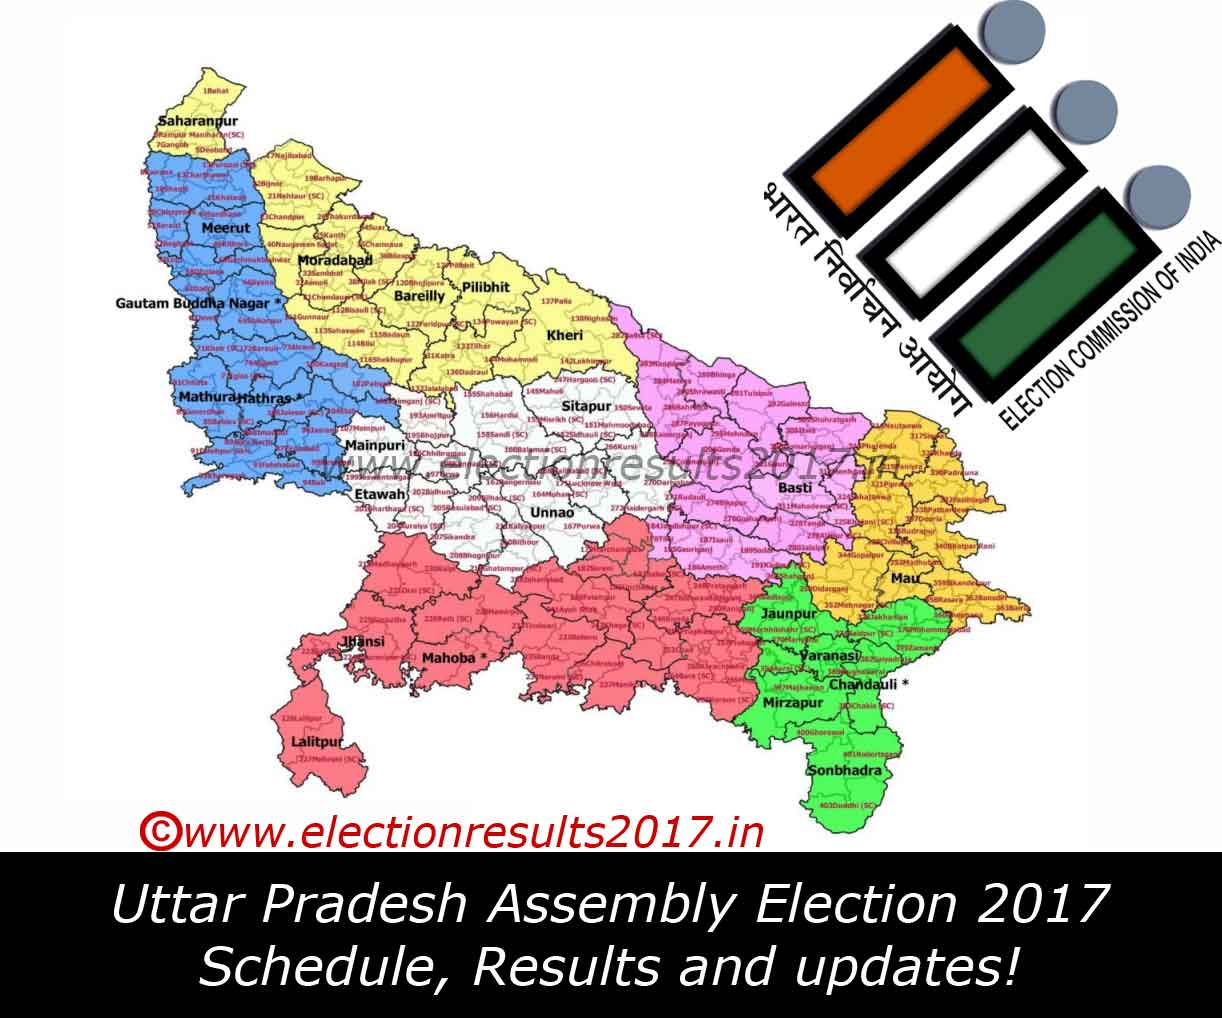 Uttar Pradesh Assembly Elections 2017